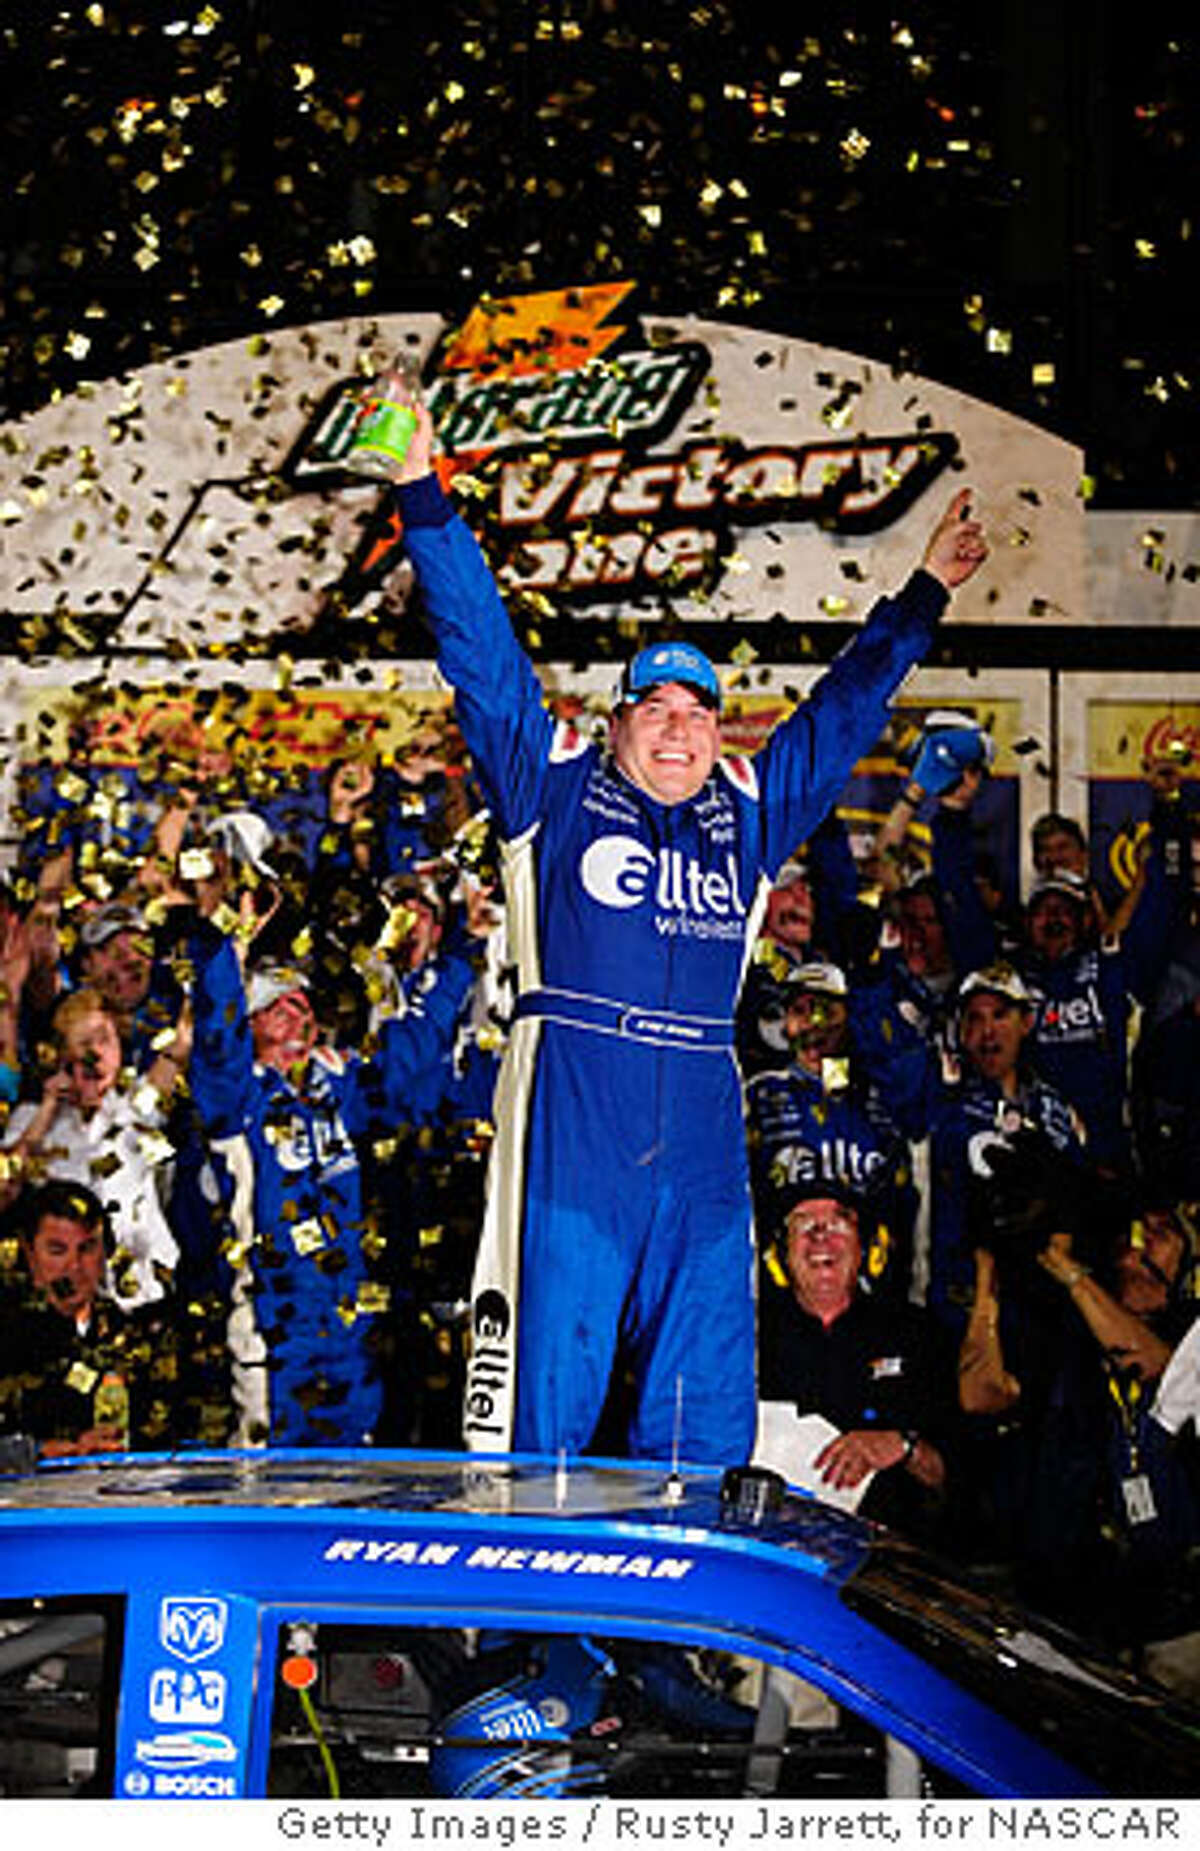 DAYTONA BEACH, FL - FEBRUARY 17: Ryan Newman, driver of the #12 Alltel Dodge, celebrates in victory lane after winning the 50th NASCAR Sprint Cup Series Daytona 500 at Daytona International Speedway on February 17, 2008 in Daytona Beach, Florida. (Photo by Rusty Jarrett/Getty Images for NASCAR)